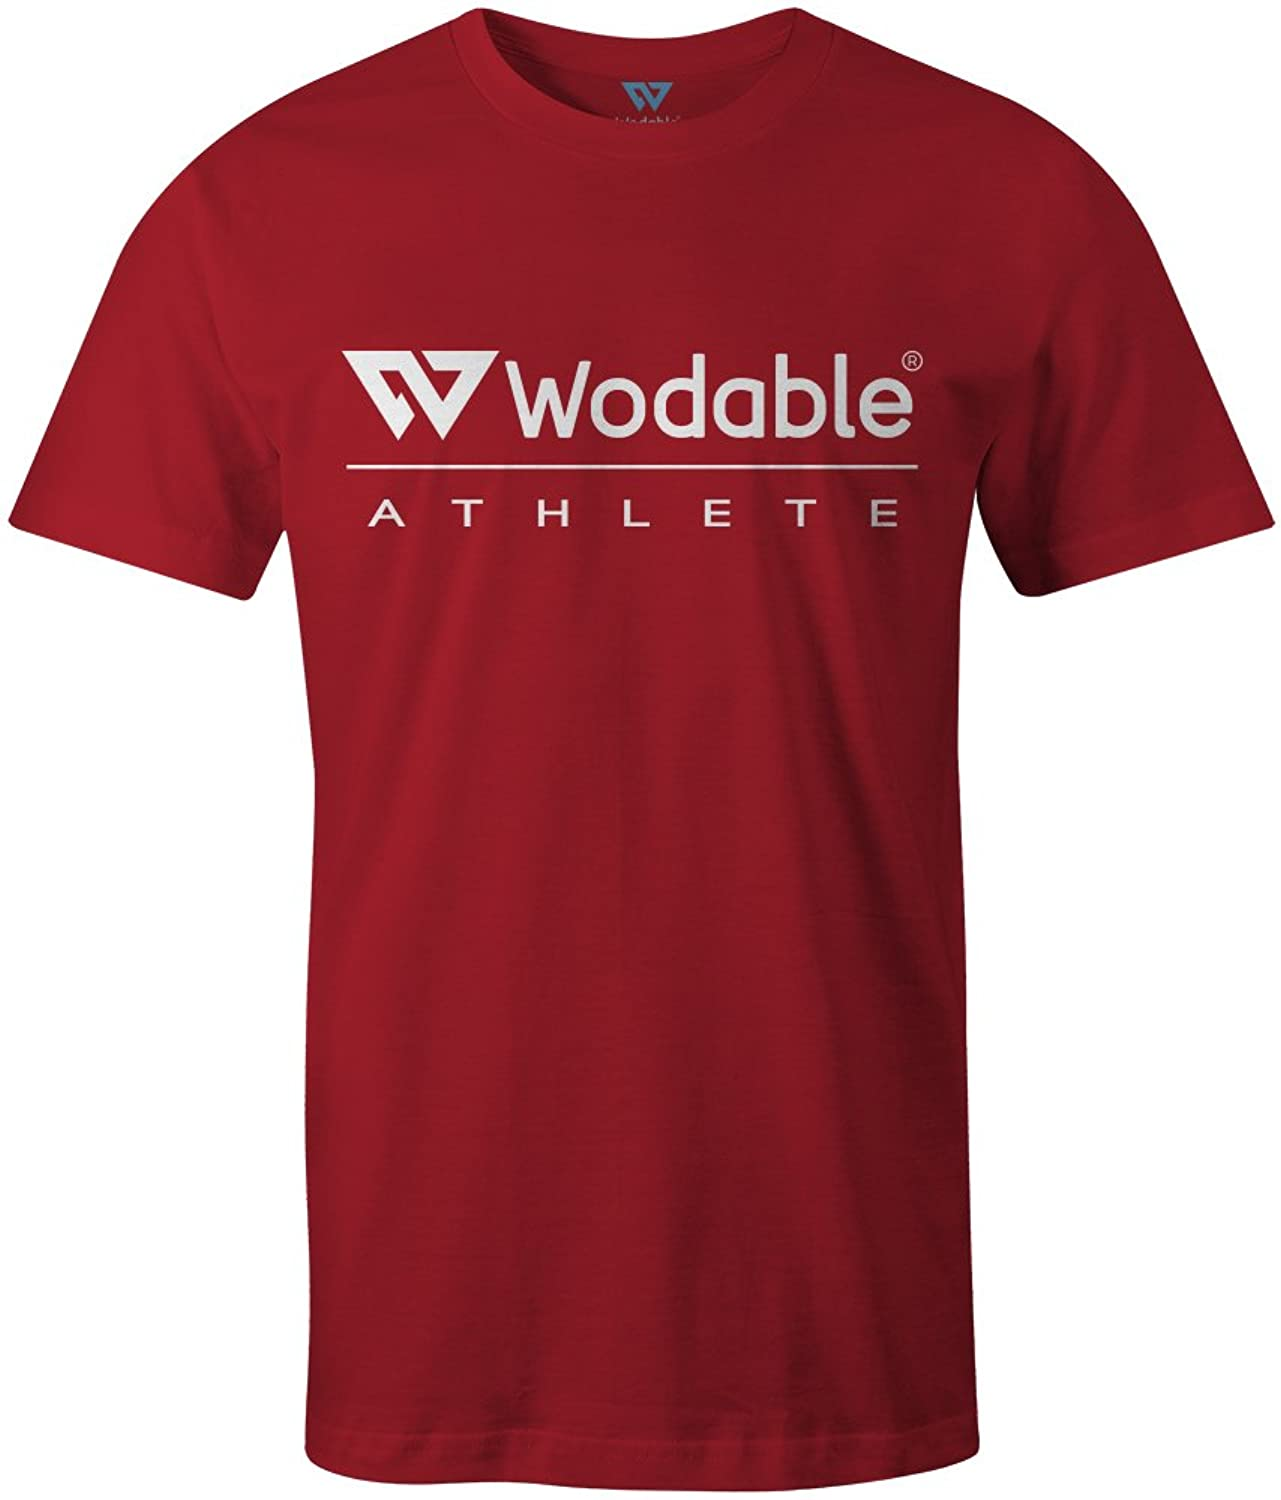 Wodable Athlete T-shirt - Crossfit Gym Fitness